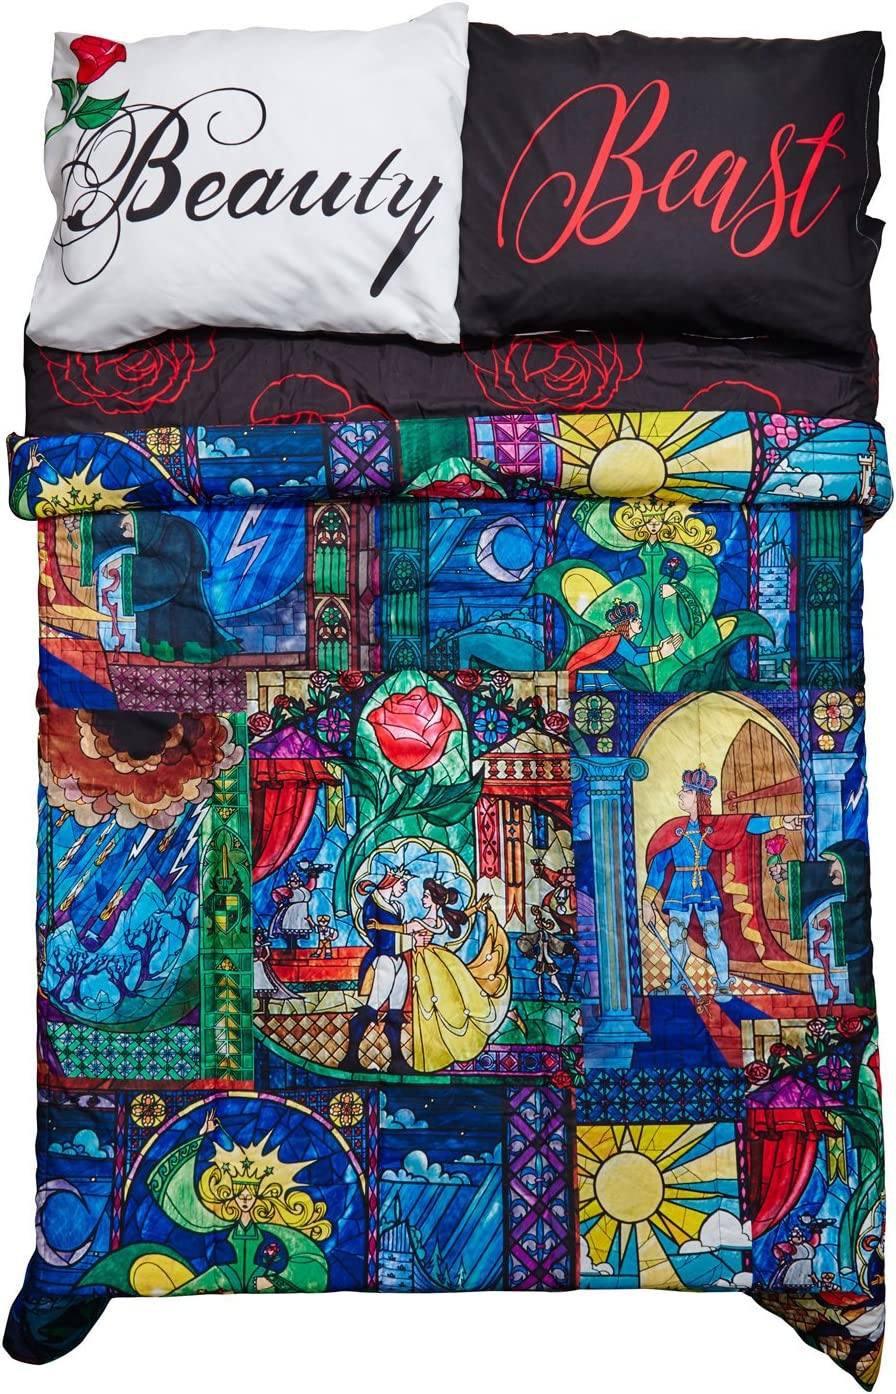 Amazon Com Beauty And The Beast Disney Stained Glass Full Queen Comforter Home Kitchen